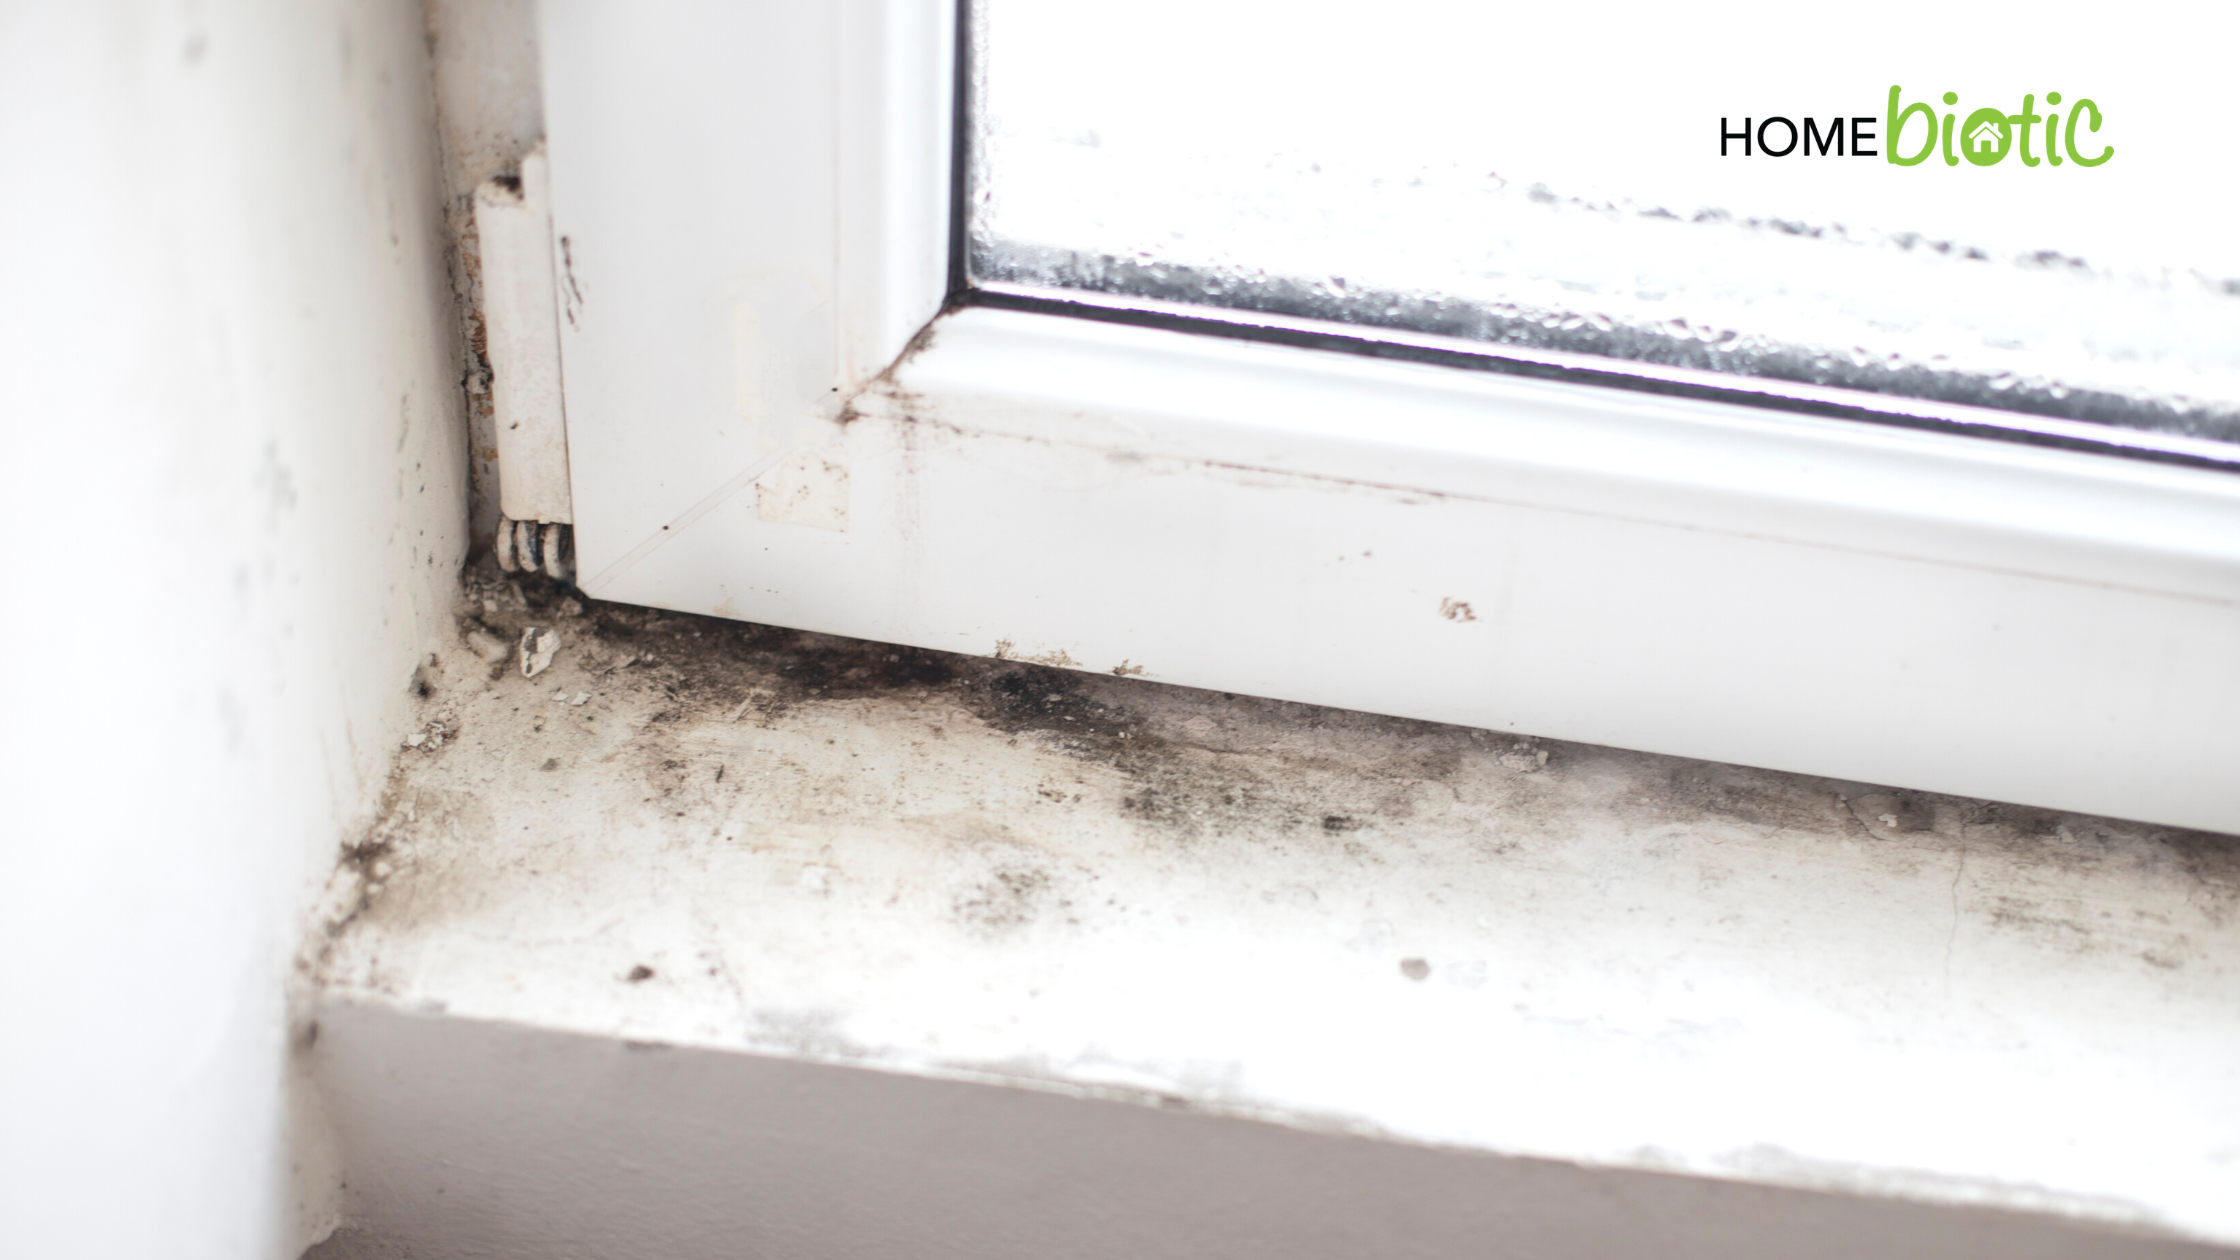 Can Mold Exposure Increase Your Coronavirus Risk? | Mold growing on a window sill